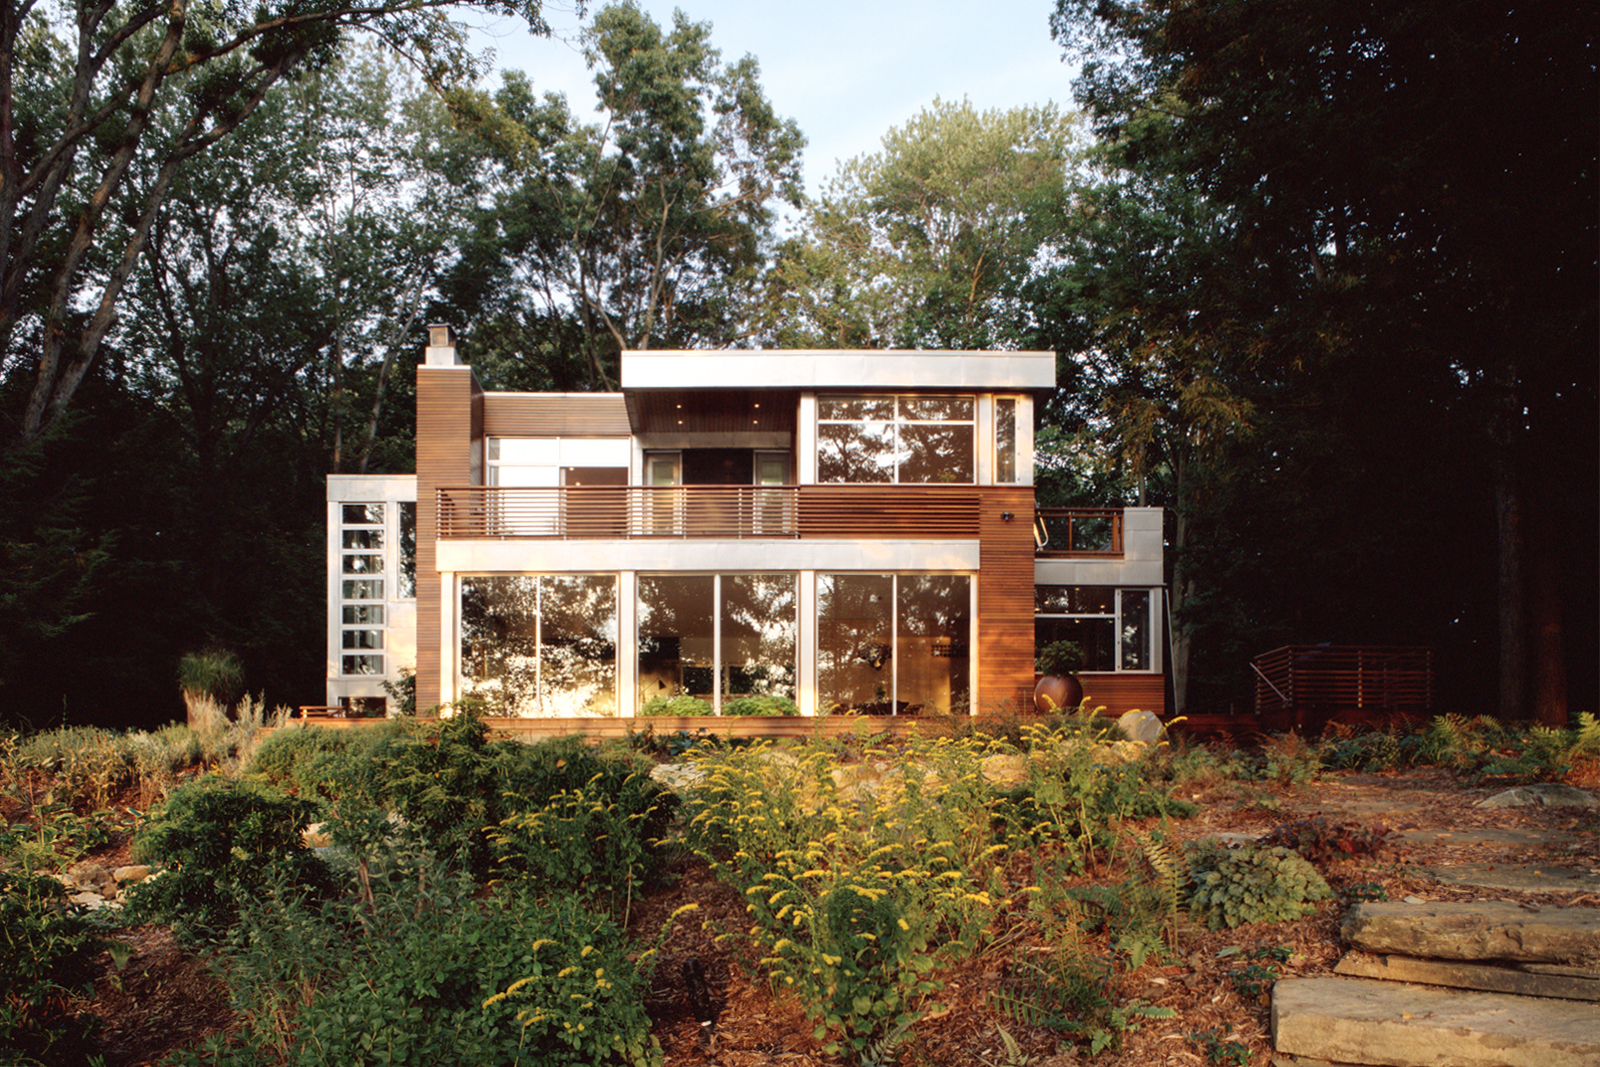 01-res4-resolution-4-architecture-modern-home-residential-lakeside-house-exterior.jpg